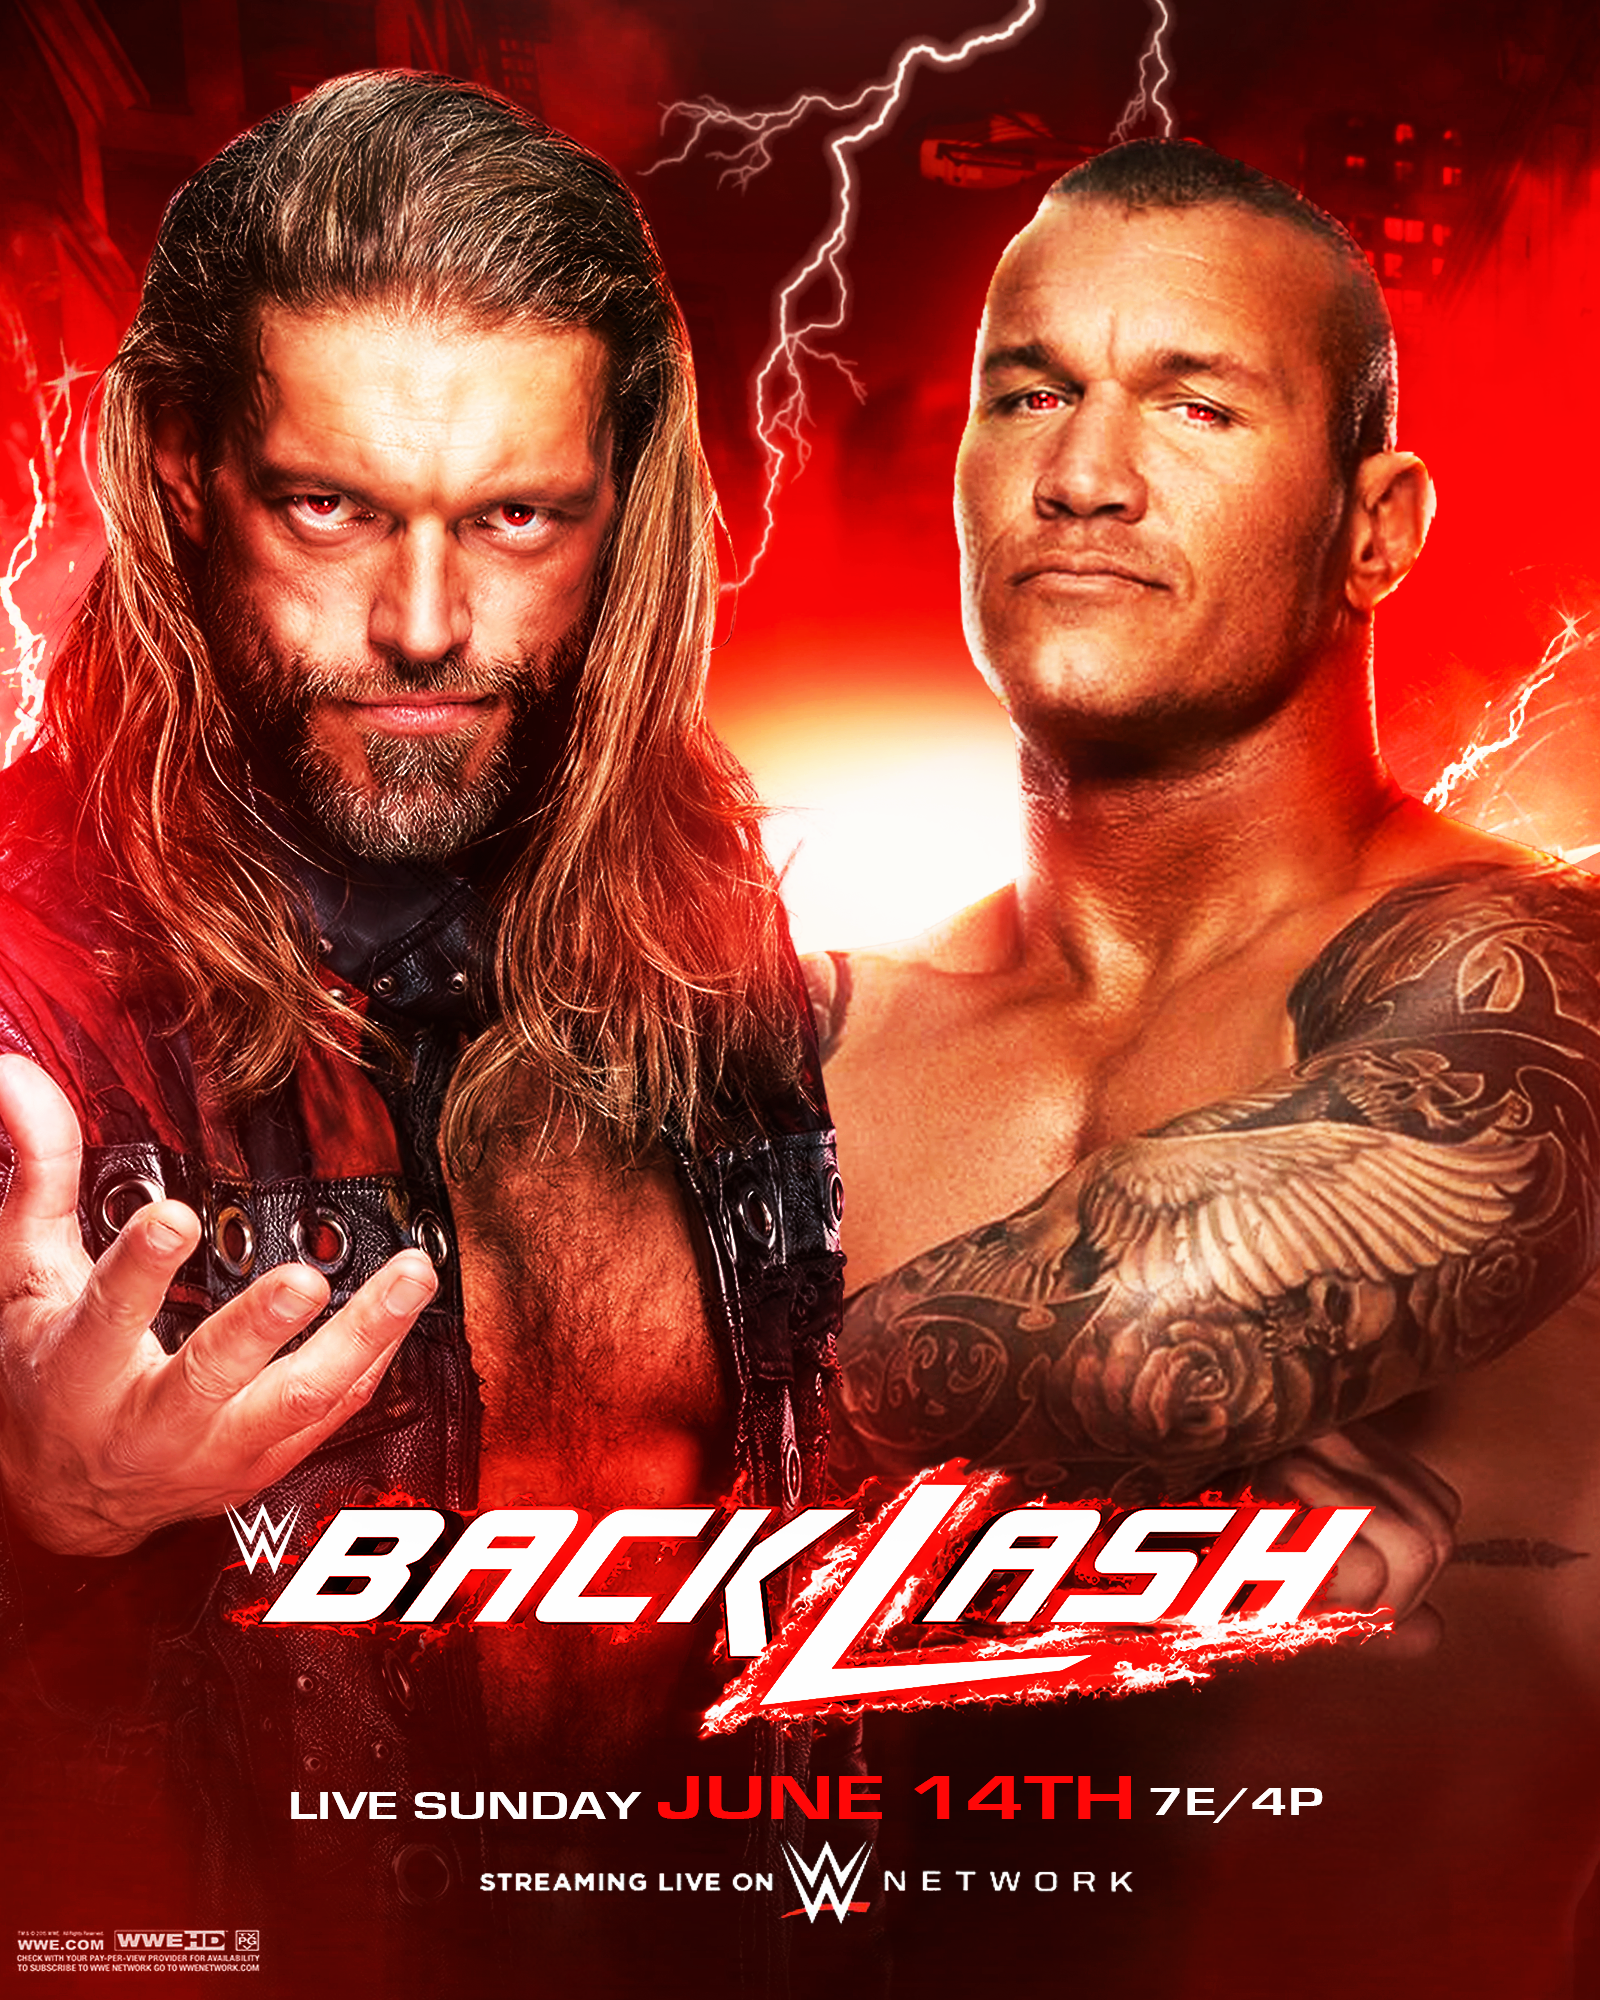 WWE Backlash 2020 Poster by WWESlashrocker54 on DeviantArt